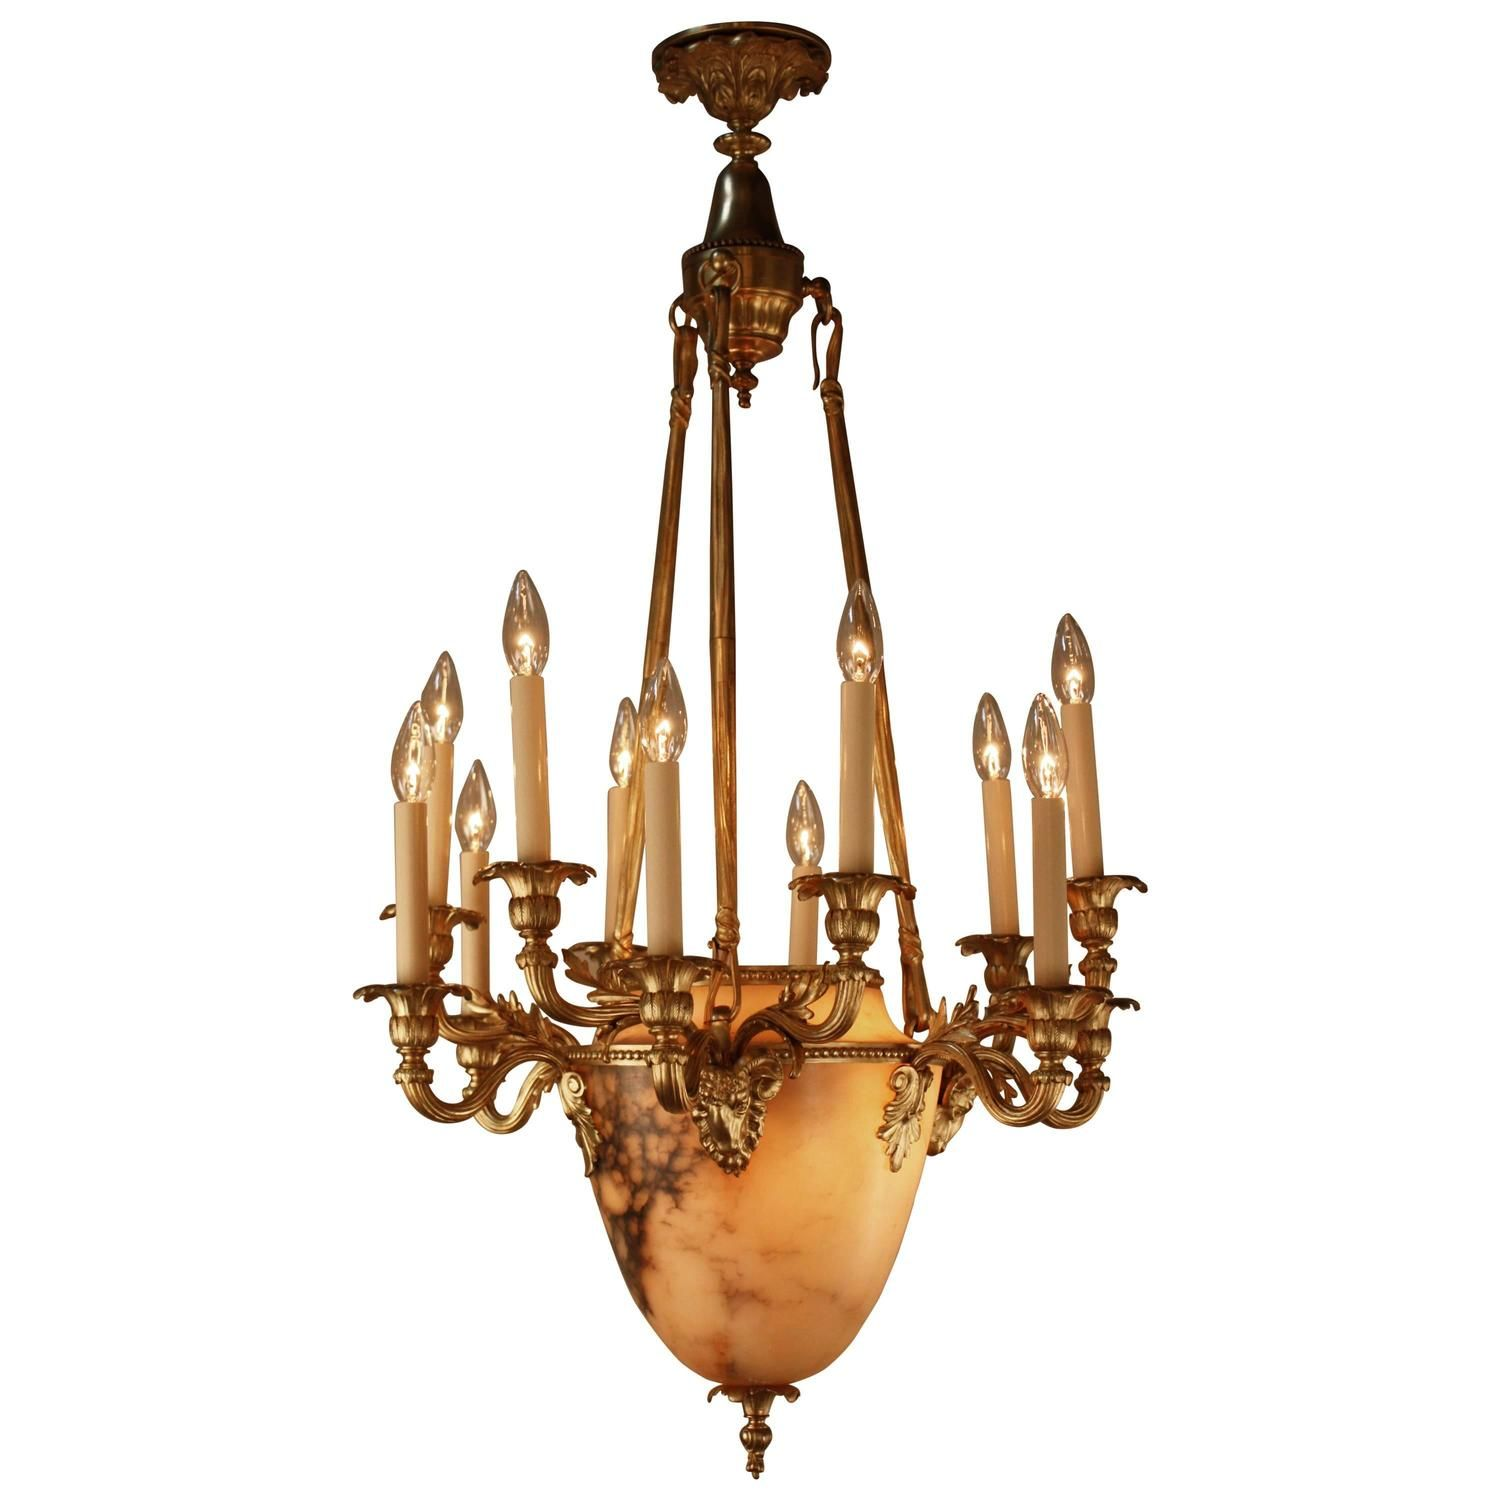 French bronze and alabaster chandelier chandeliers urn and canopy french bronze and alabaster chandelier aloadofball Gallery